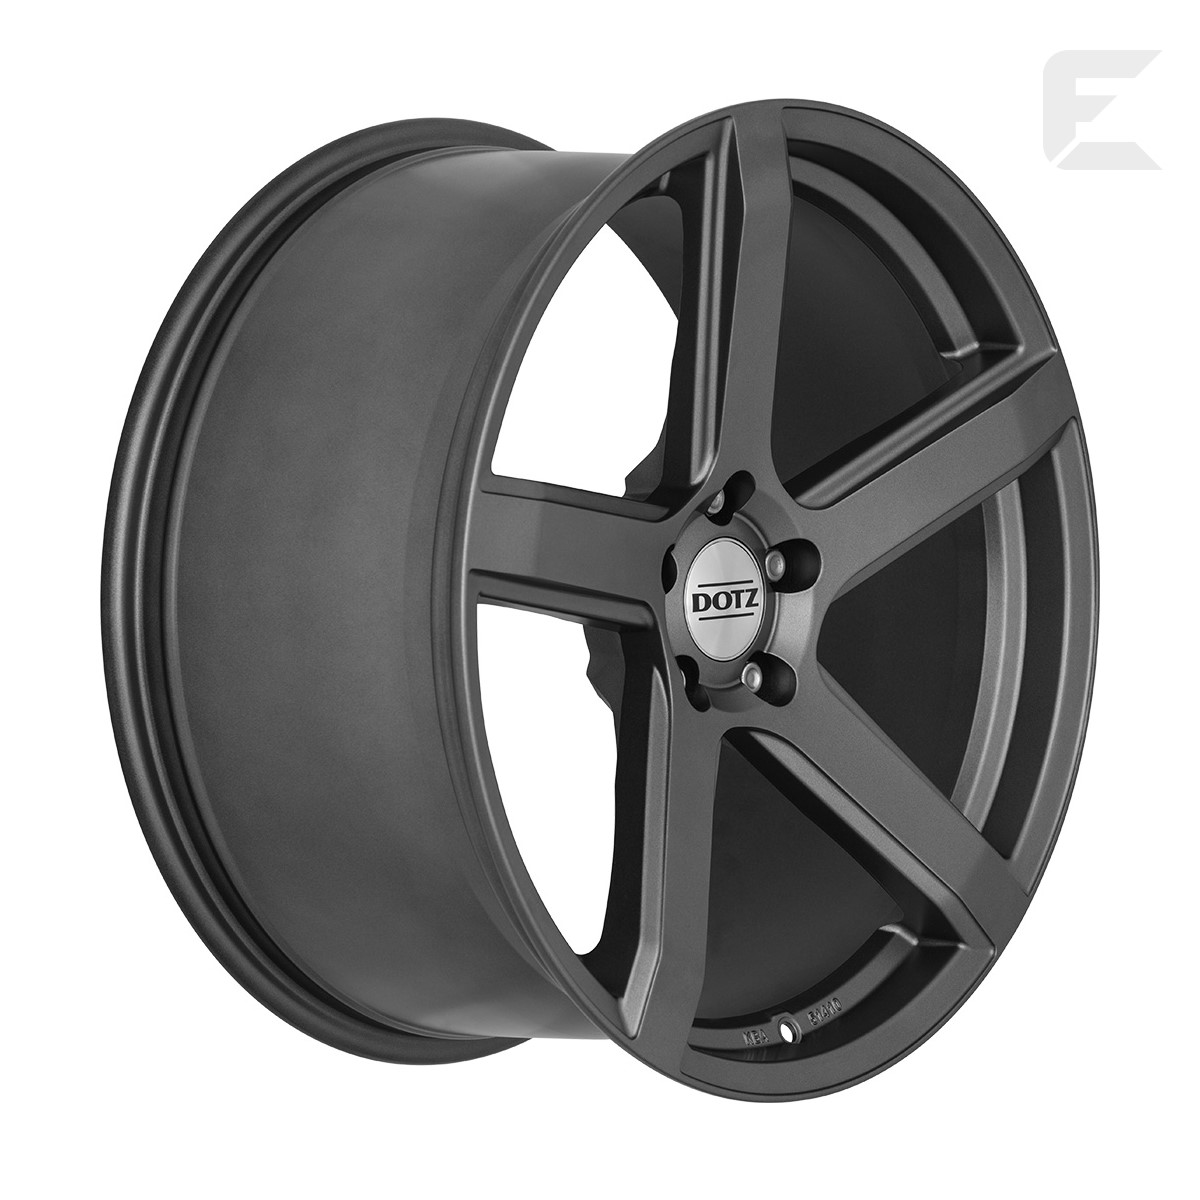 4 x 17 inch alloy wheels for citroen ds3 convertible ds4. Black Bedroom Furniture Sets. Home Design Ideas